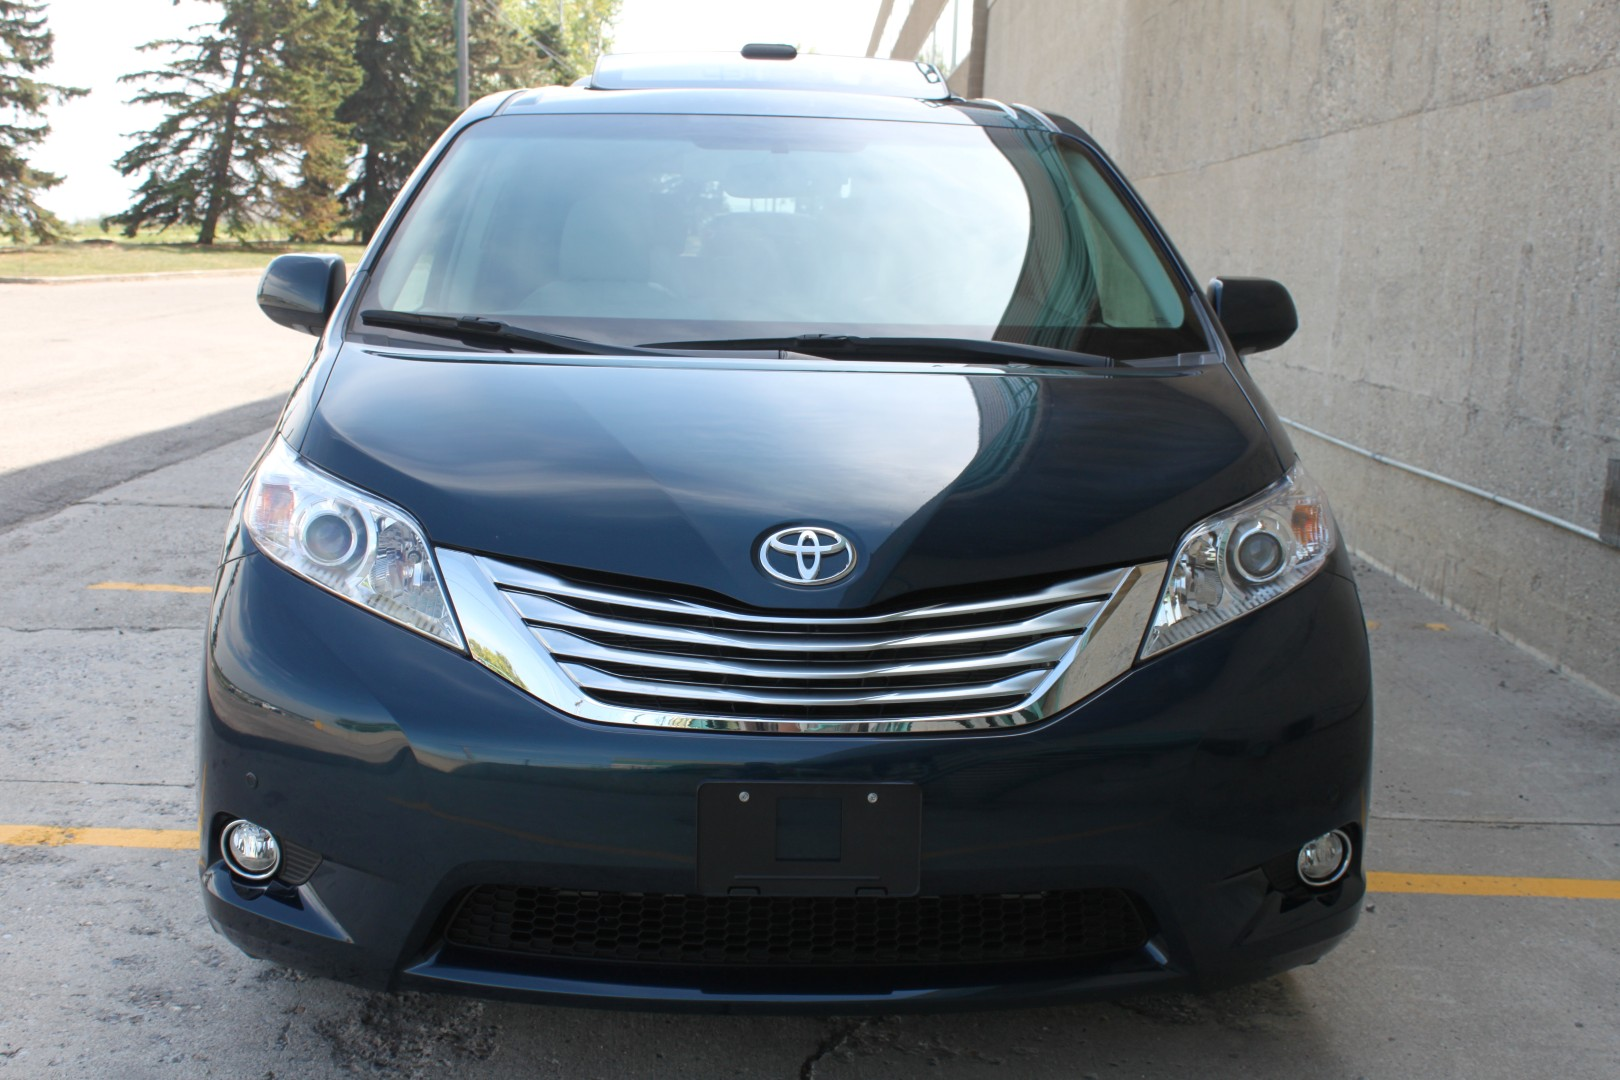 2011 Toyota Sienna XLE Limited AWD - Envision Auto